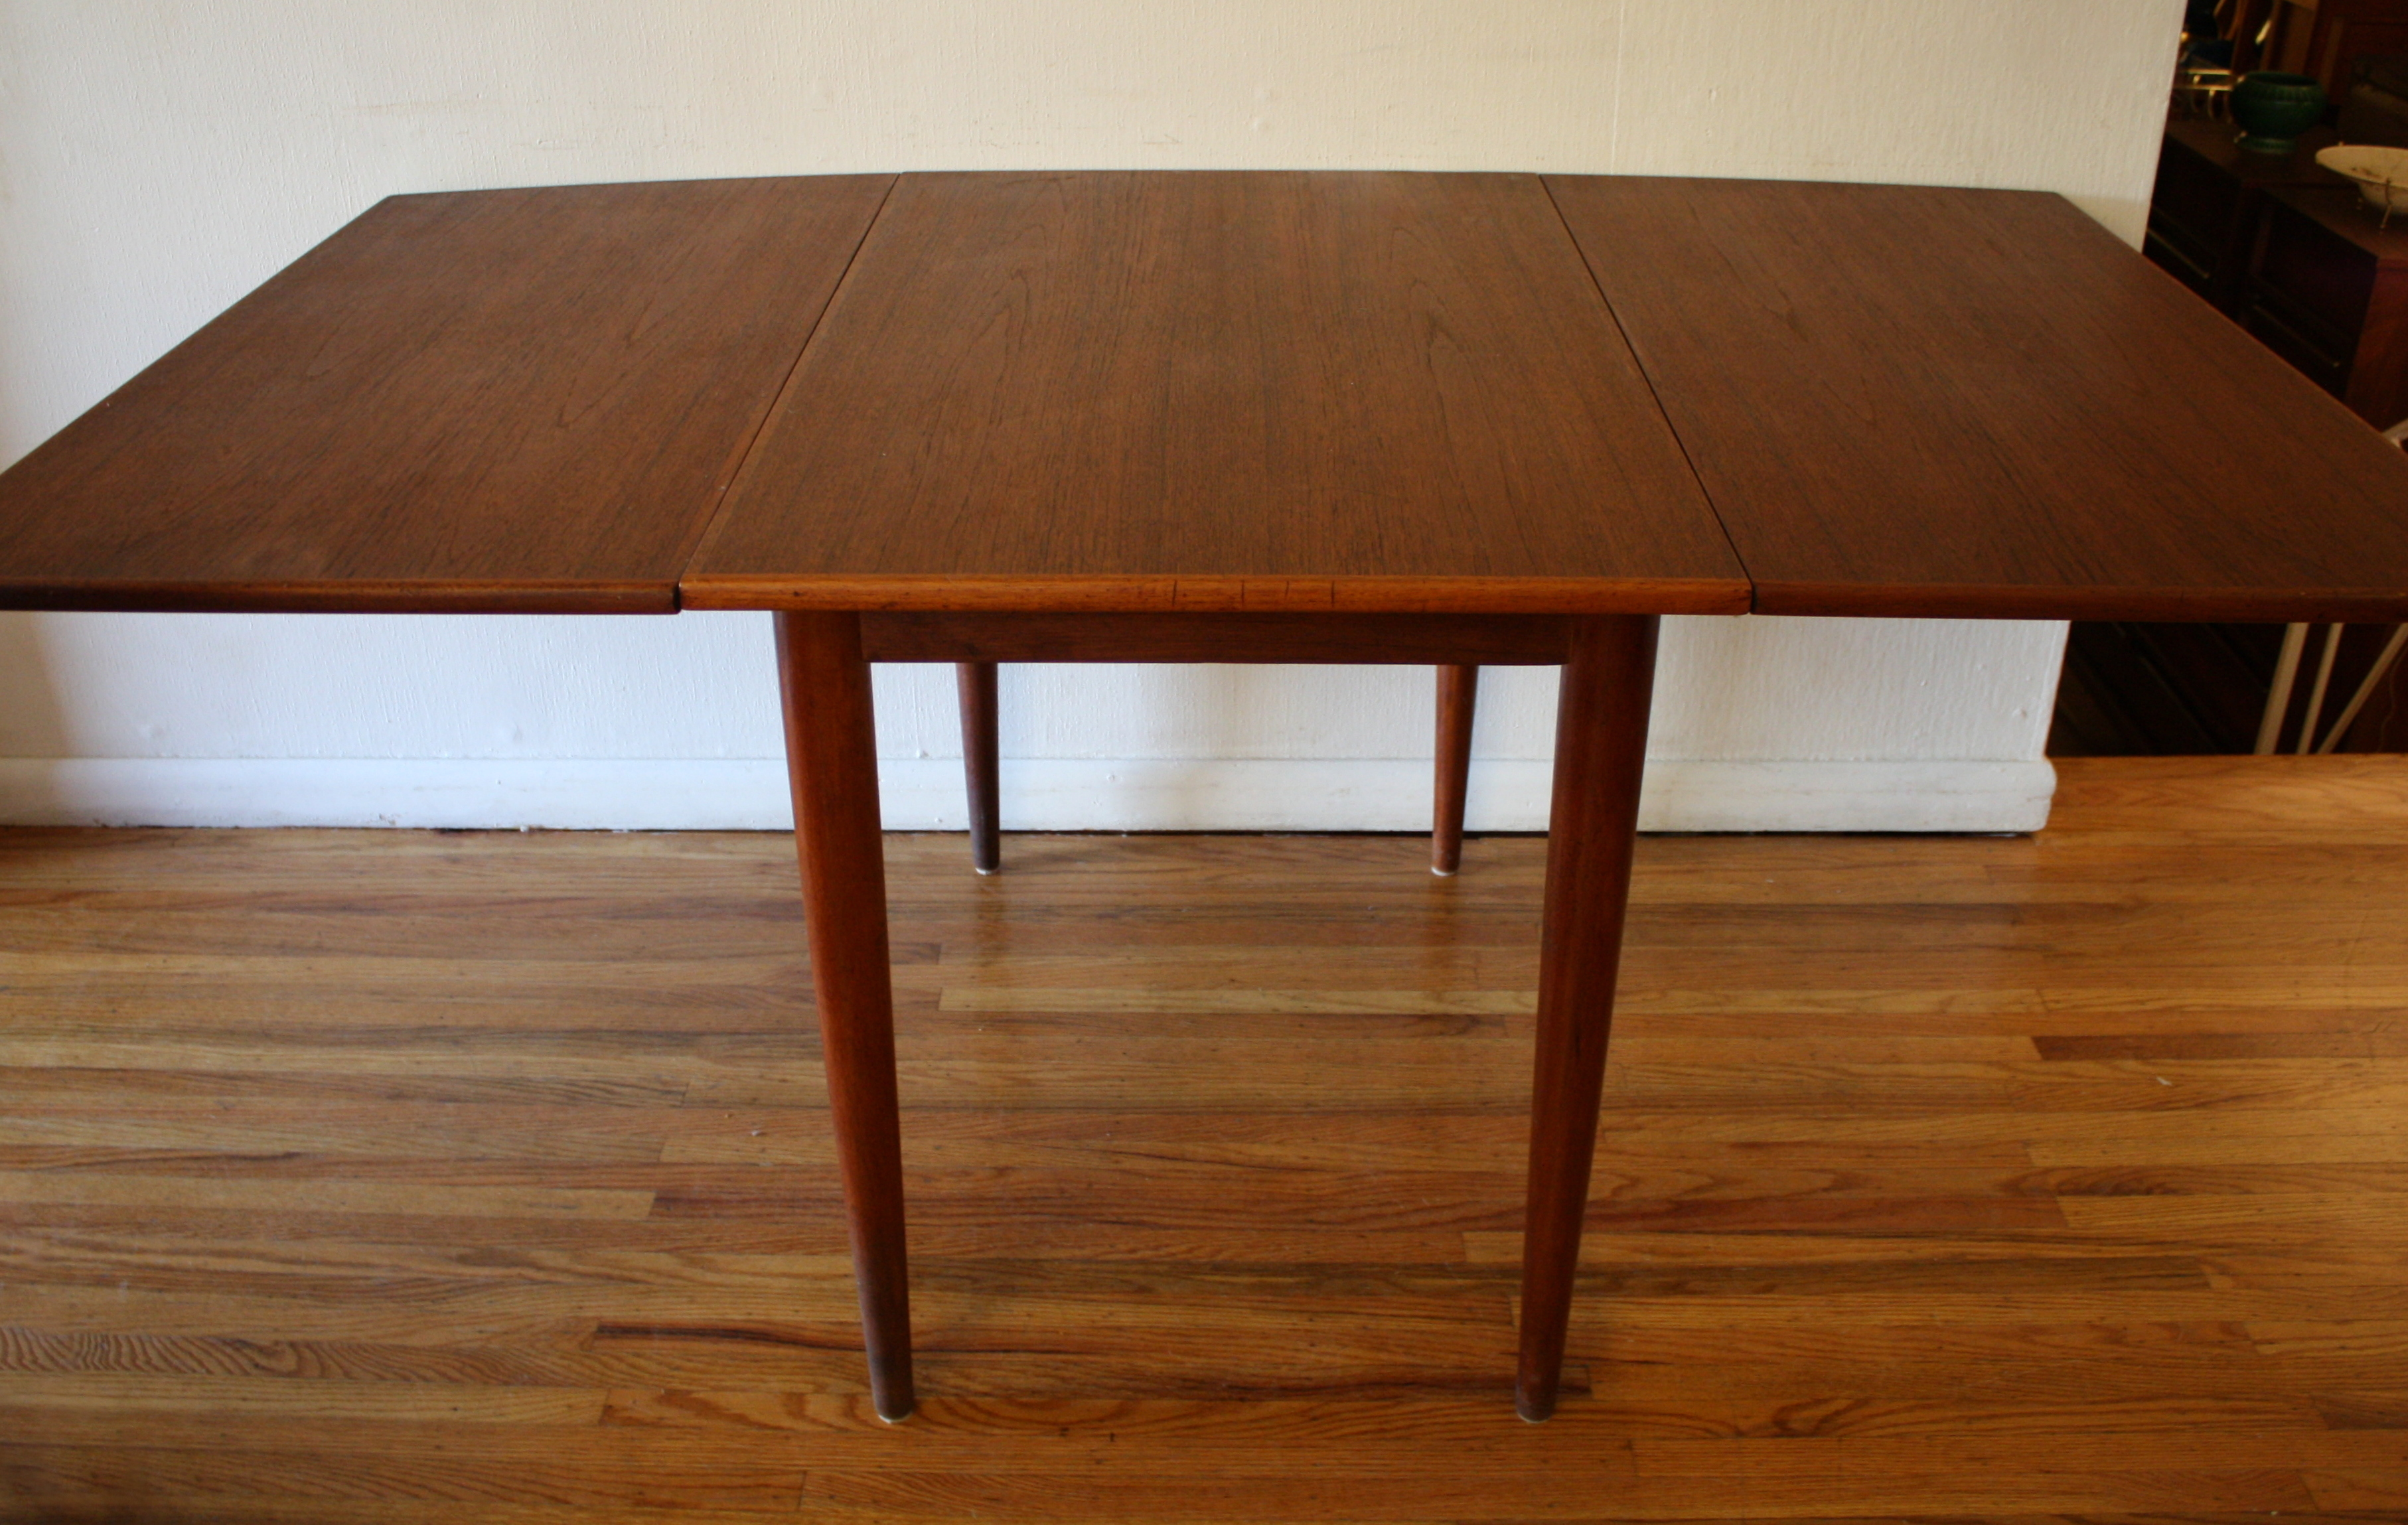 Folding Dining Room Table Chairs Mid Century Modern Danish Teak Dining Chairs And Folding